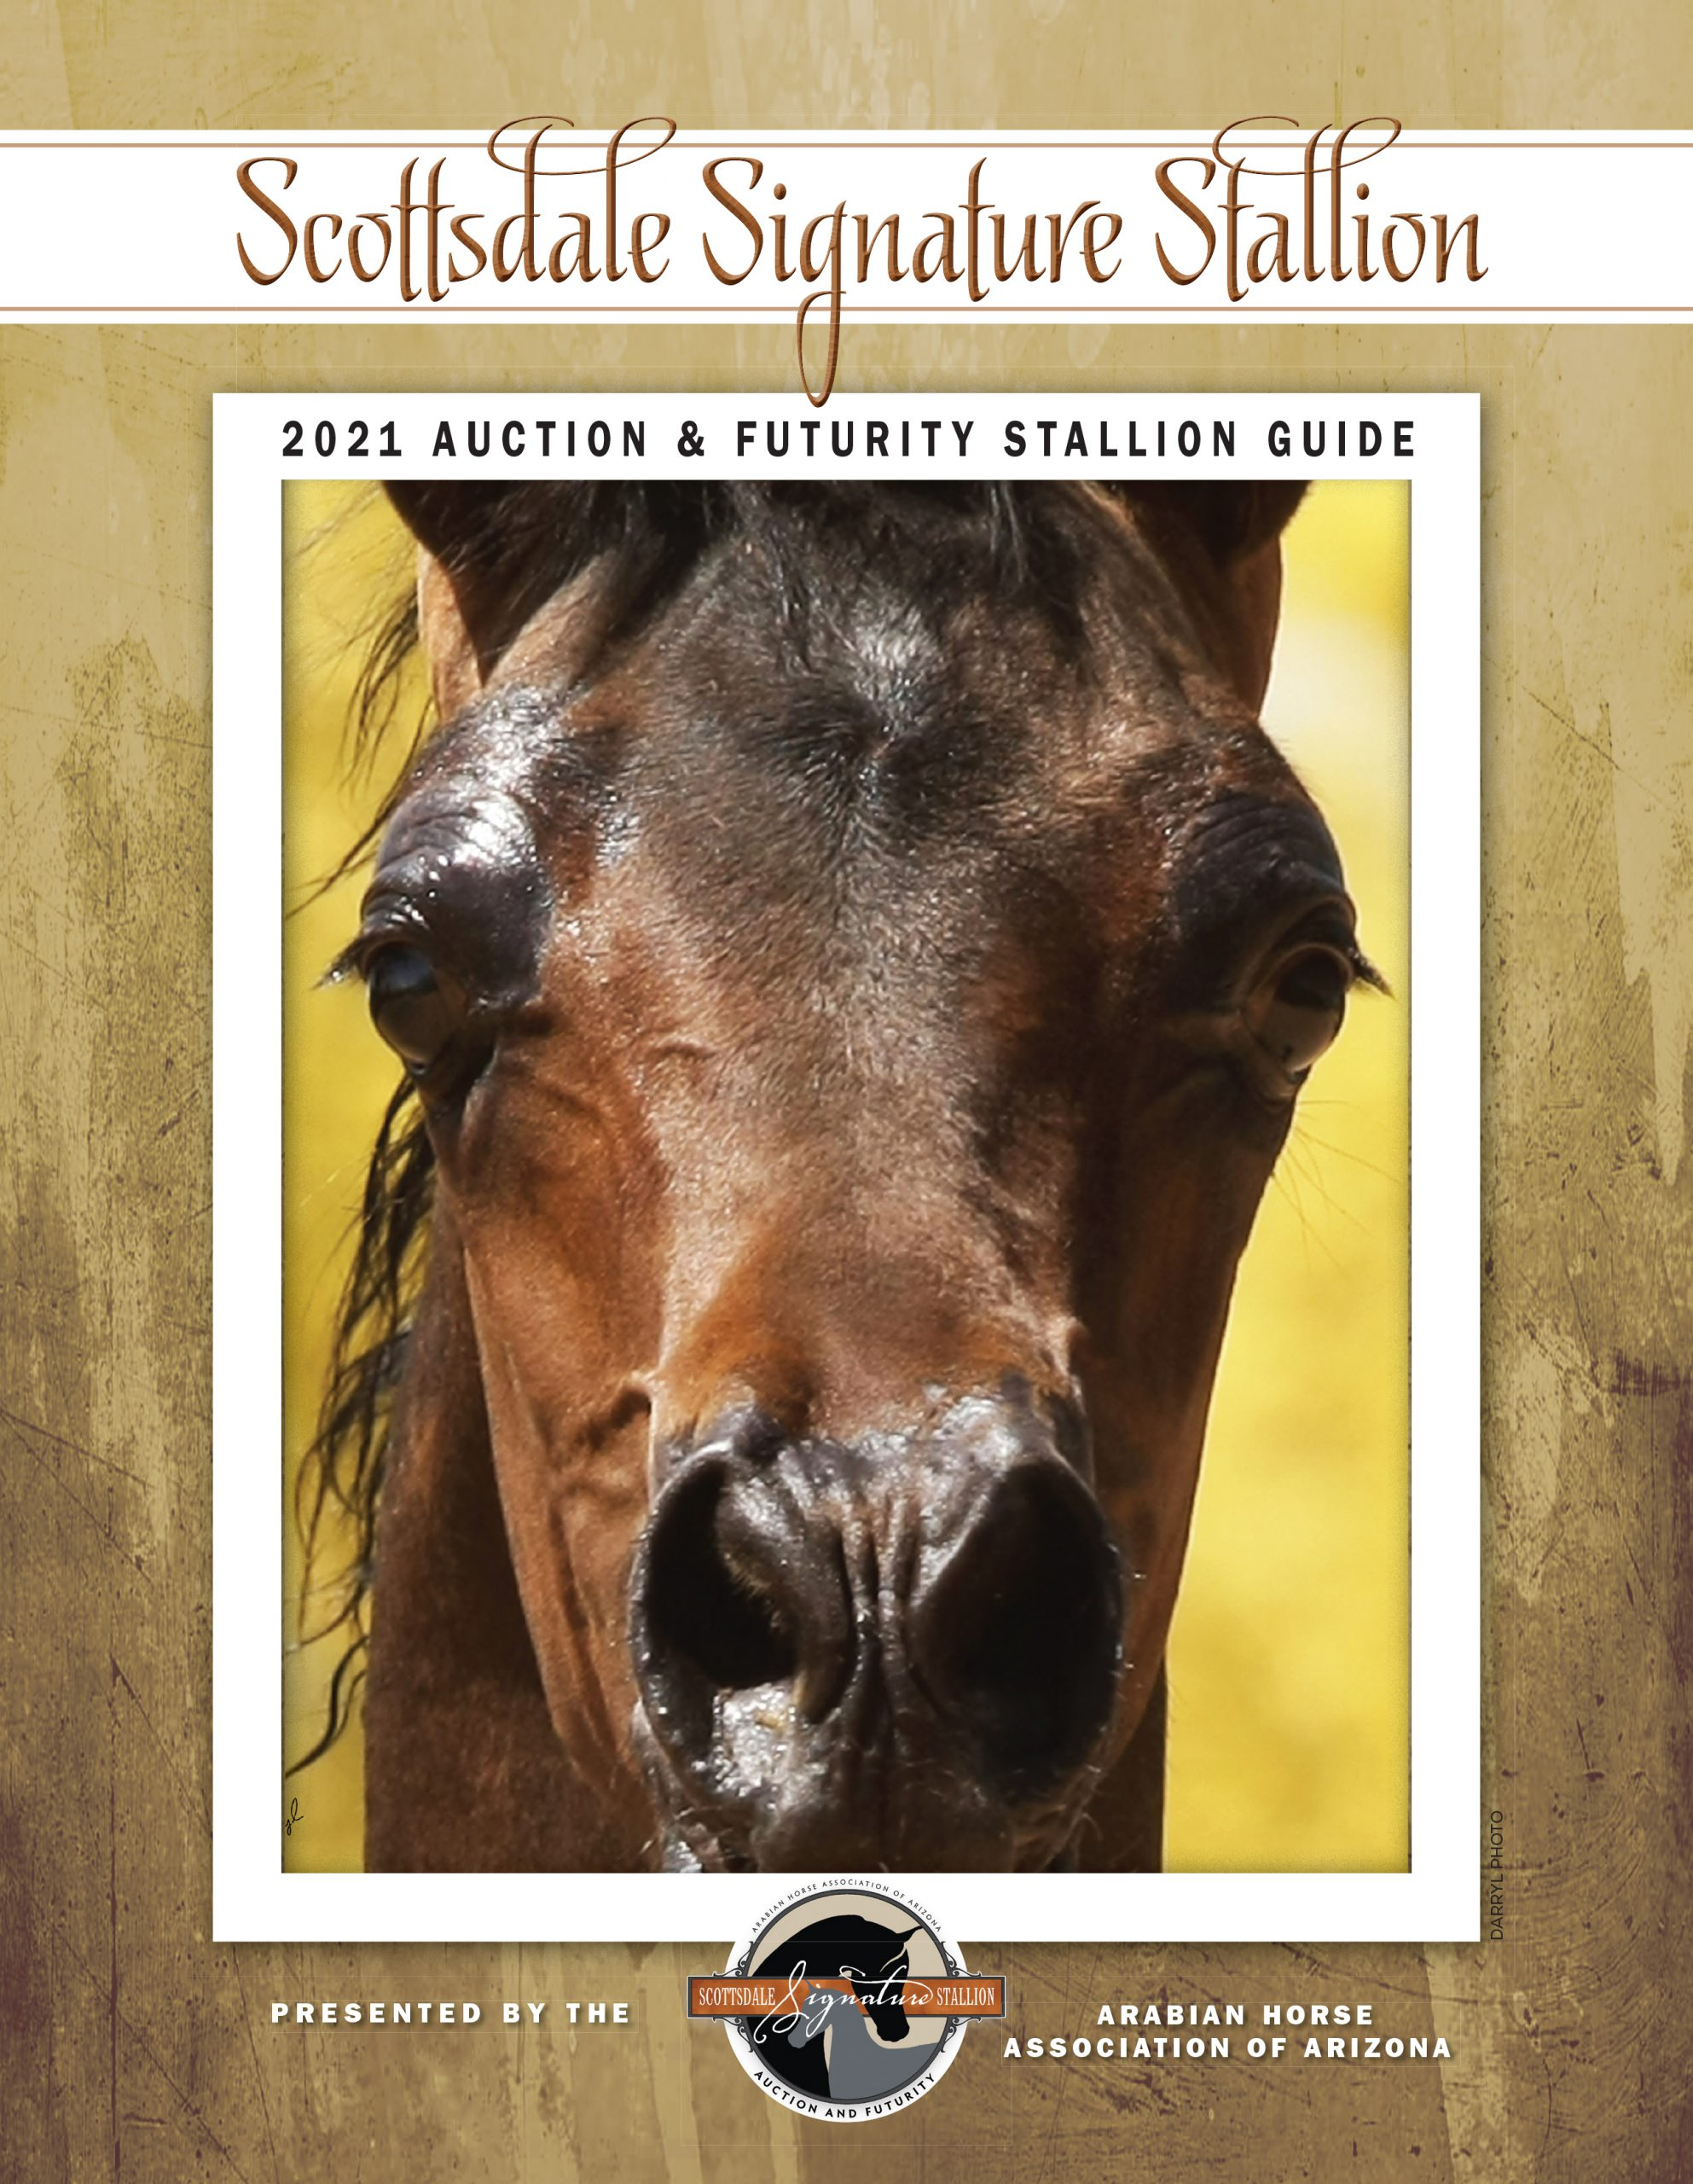 2021 Scottsdale Signature Stallion Brochure